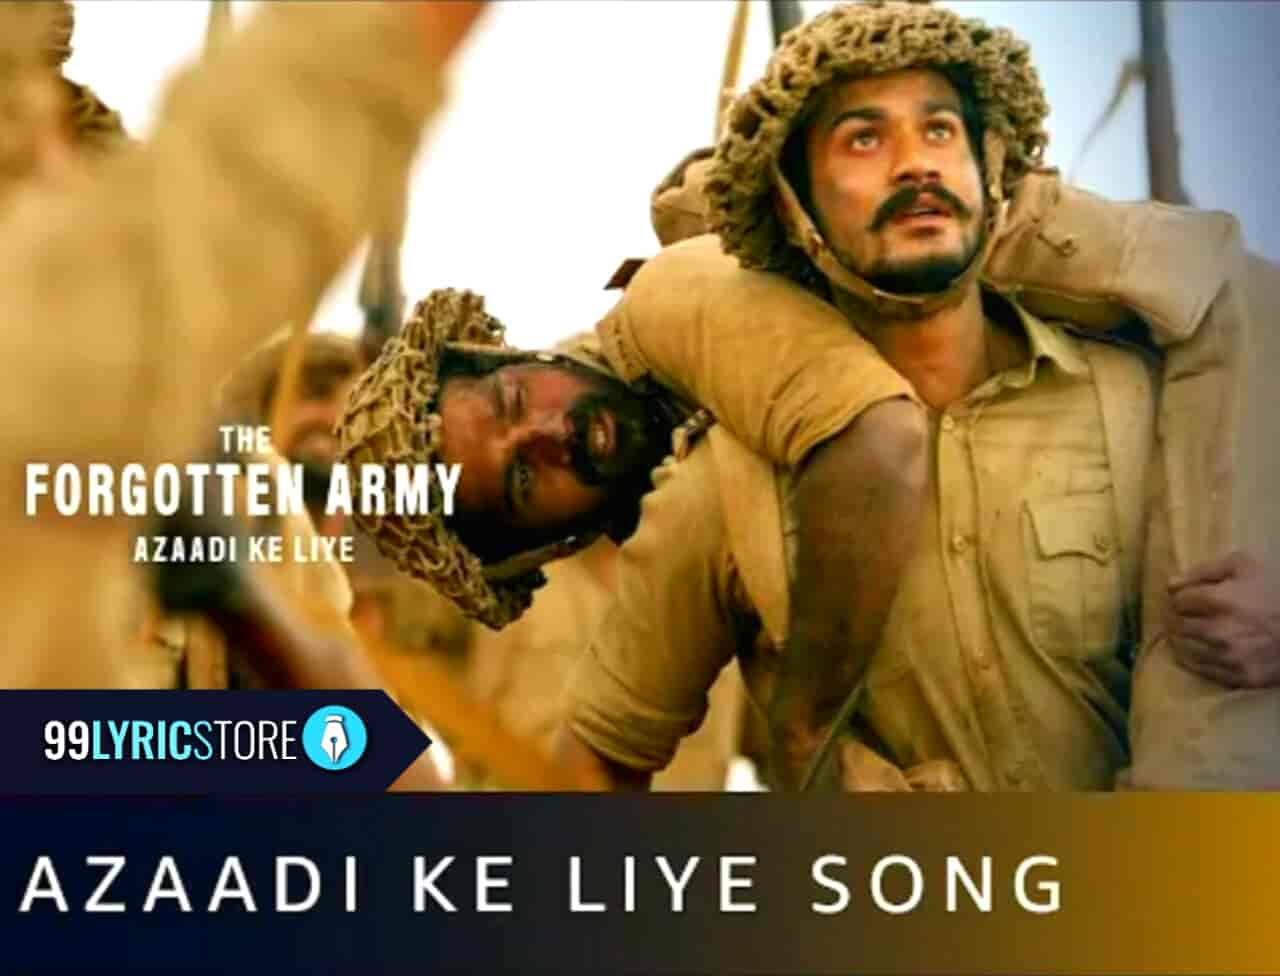 Azaadi Ke Liye Song Lyrics Images From Album The Forgotten Army